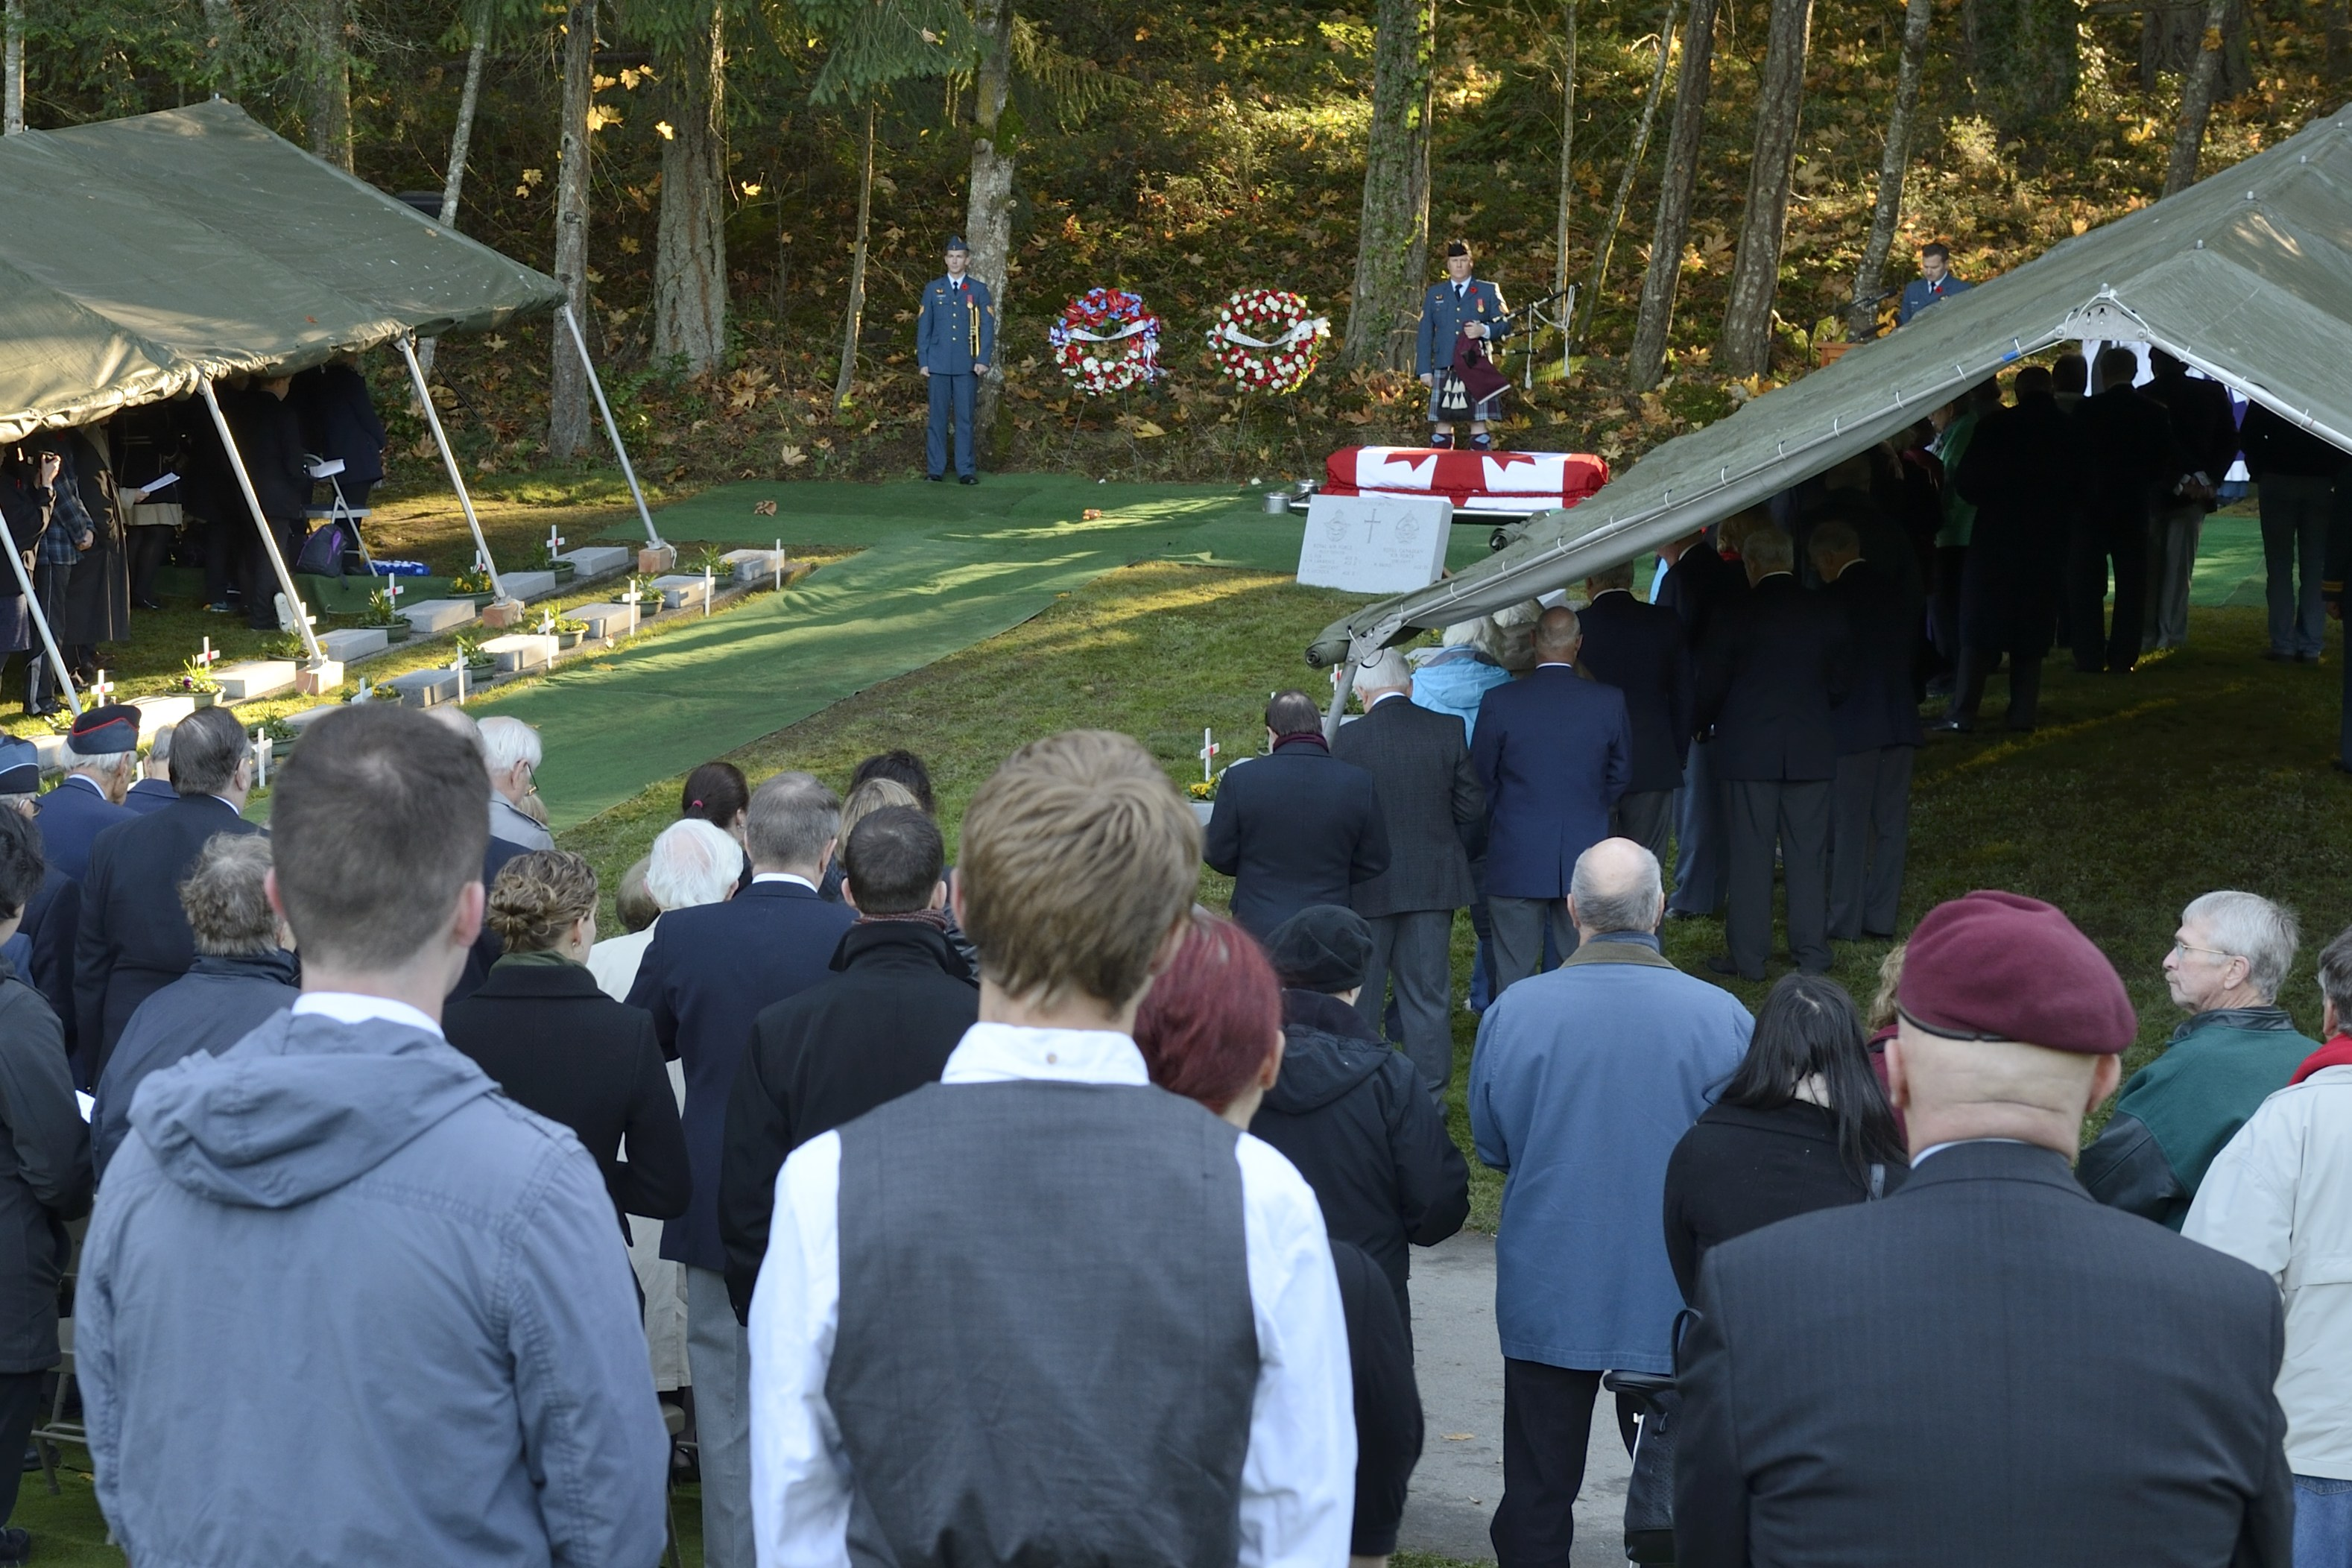 Family members, and members and veterans of the Royal Air Force (RAF) and the Royal Canadian Air Force (RCAF), attend the November 10, 2014, interment service of Pilot Officer Charles George Fox, Pilot Officer Anthony William Lawrence and Sergeant Robert Ernest Luckock, of the RAF, and Sergeant William Baird, of the RCAF, at Royal Oak Burial Park in Victoria, British Columbia. PHOTO: Corporal Malcolm Byers